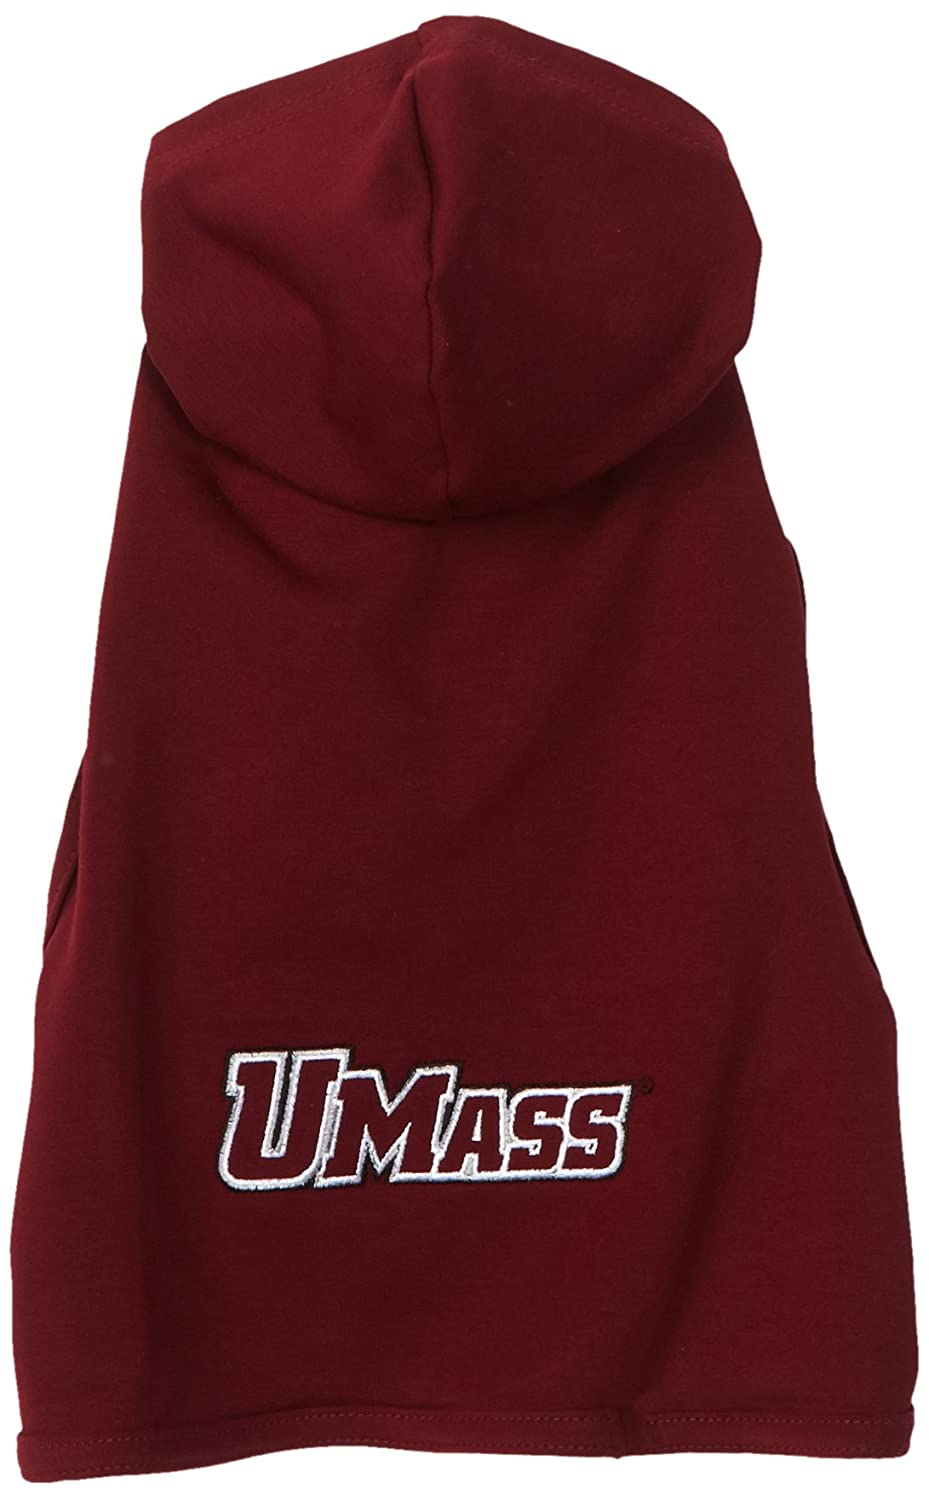 X-Large NCAA Massachusetts Minutemen Cotton Lycra Hooded Dog Shirt